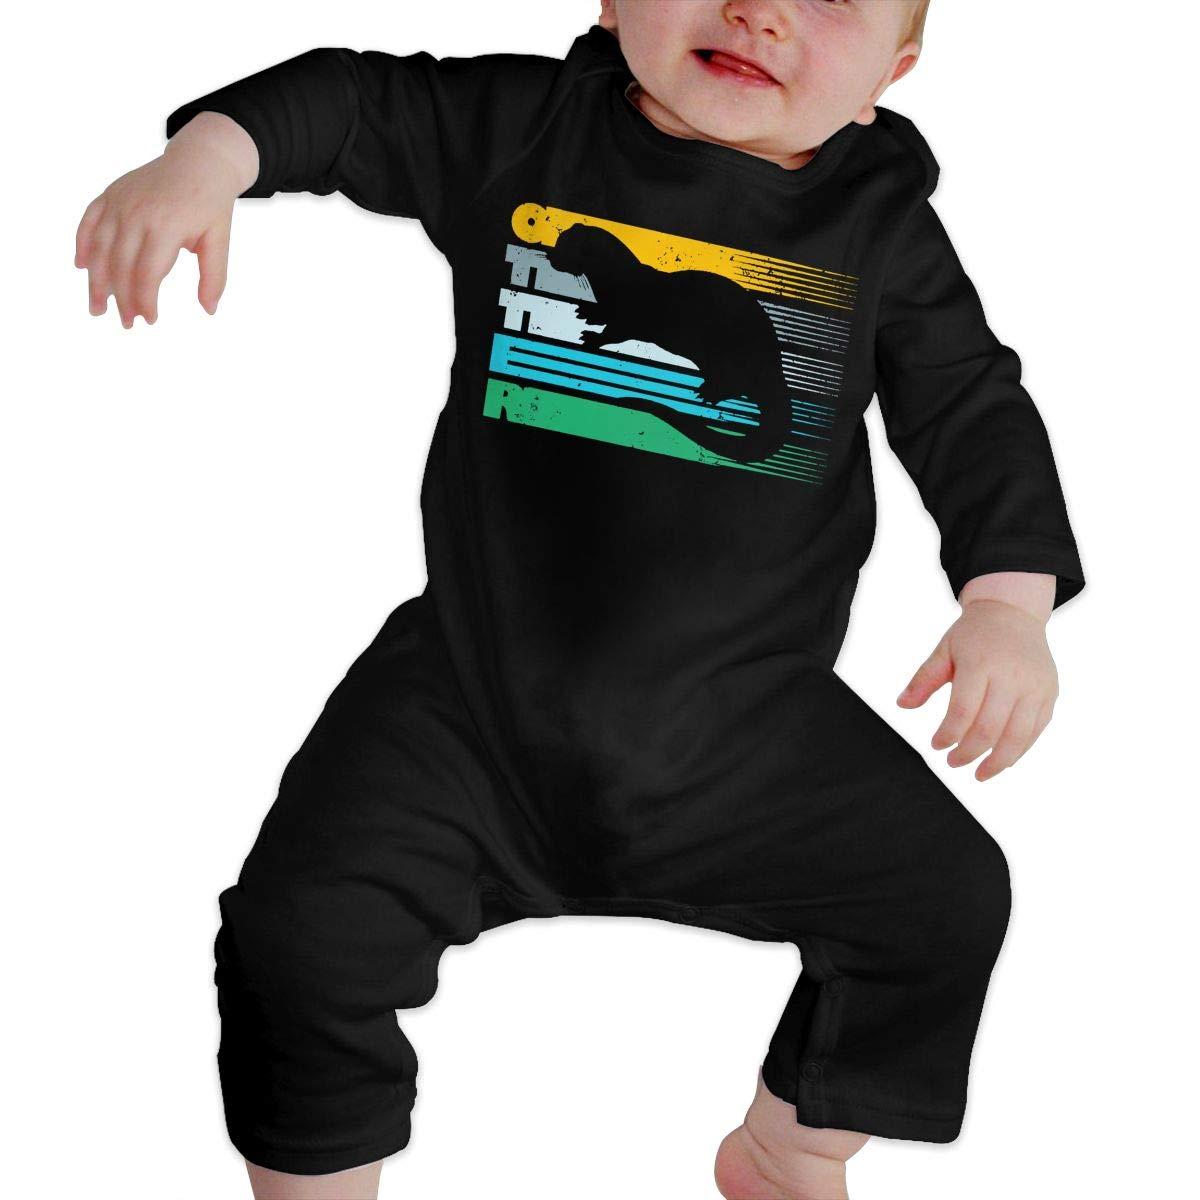 Mri-le1 Newborn Baby Long Sleeved Coveralls Cool Sea Otter Toddler Jumpsuit